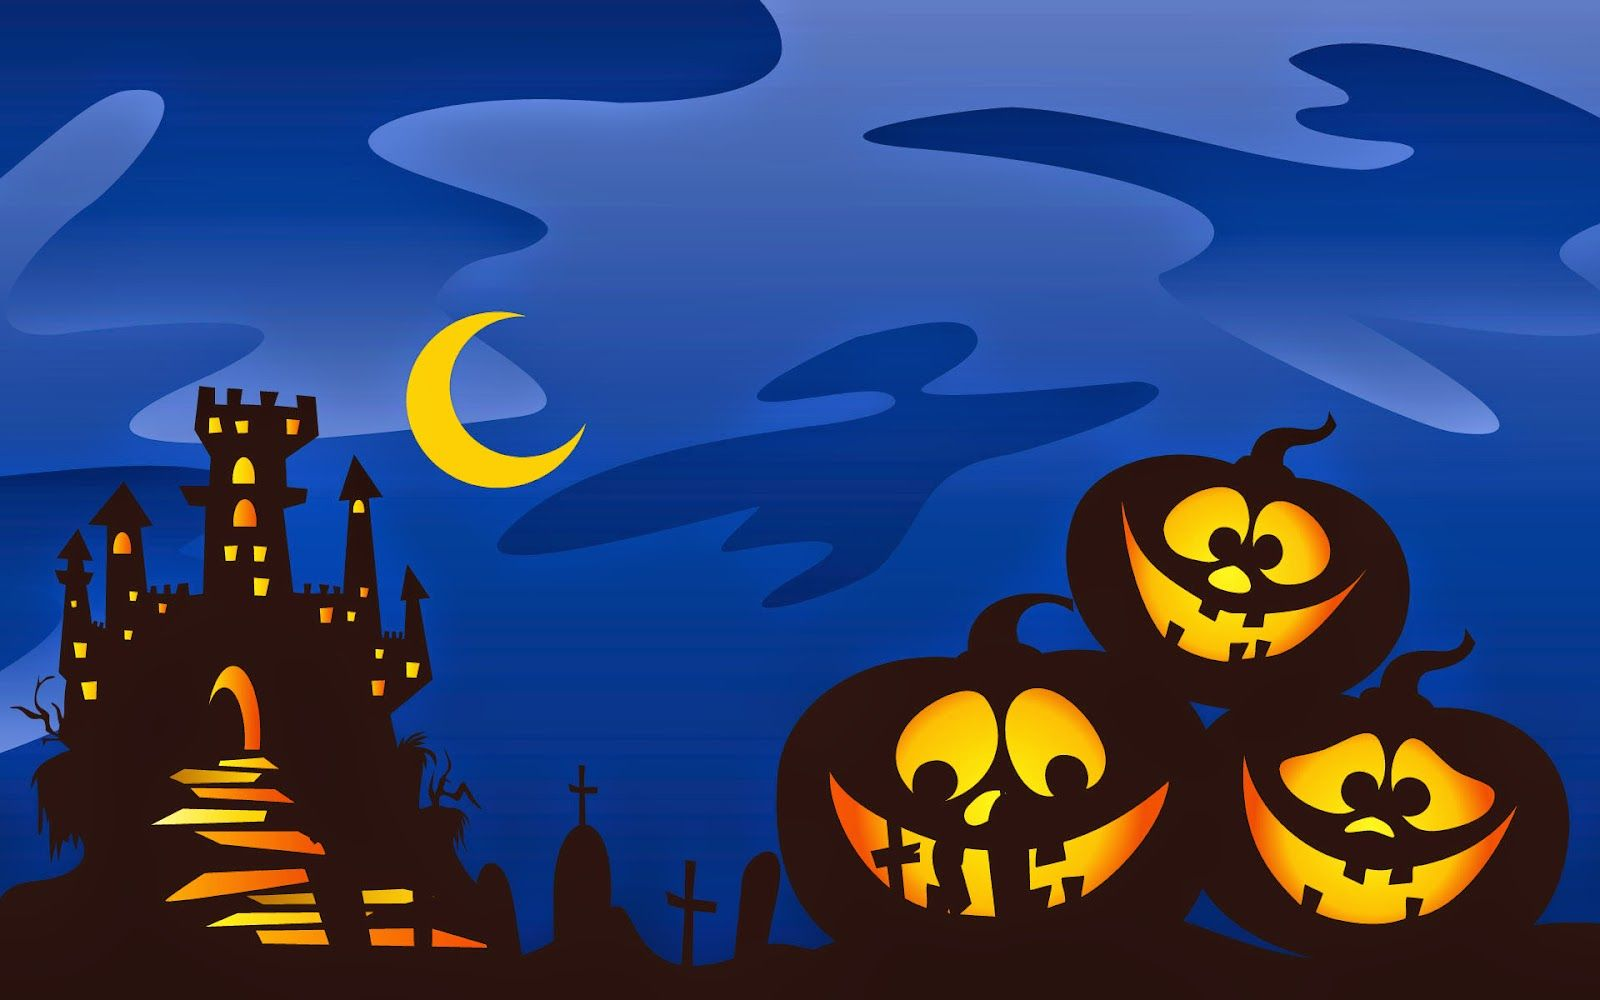 60 Amazing Halloween Hd Wallpapers 1920x1080 2560x1600 Px Set 2